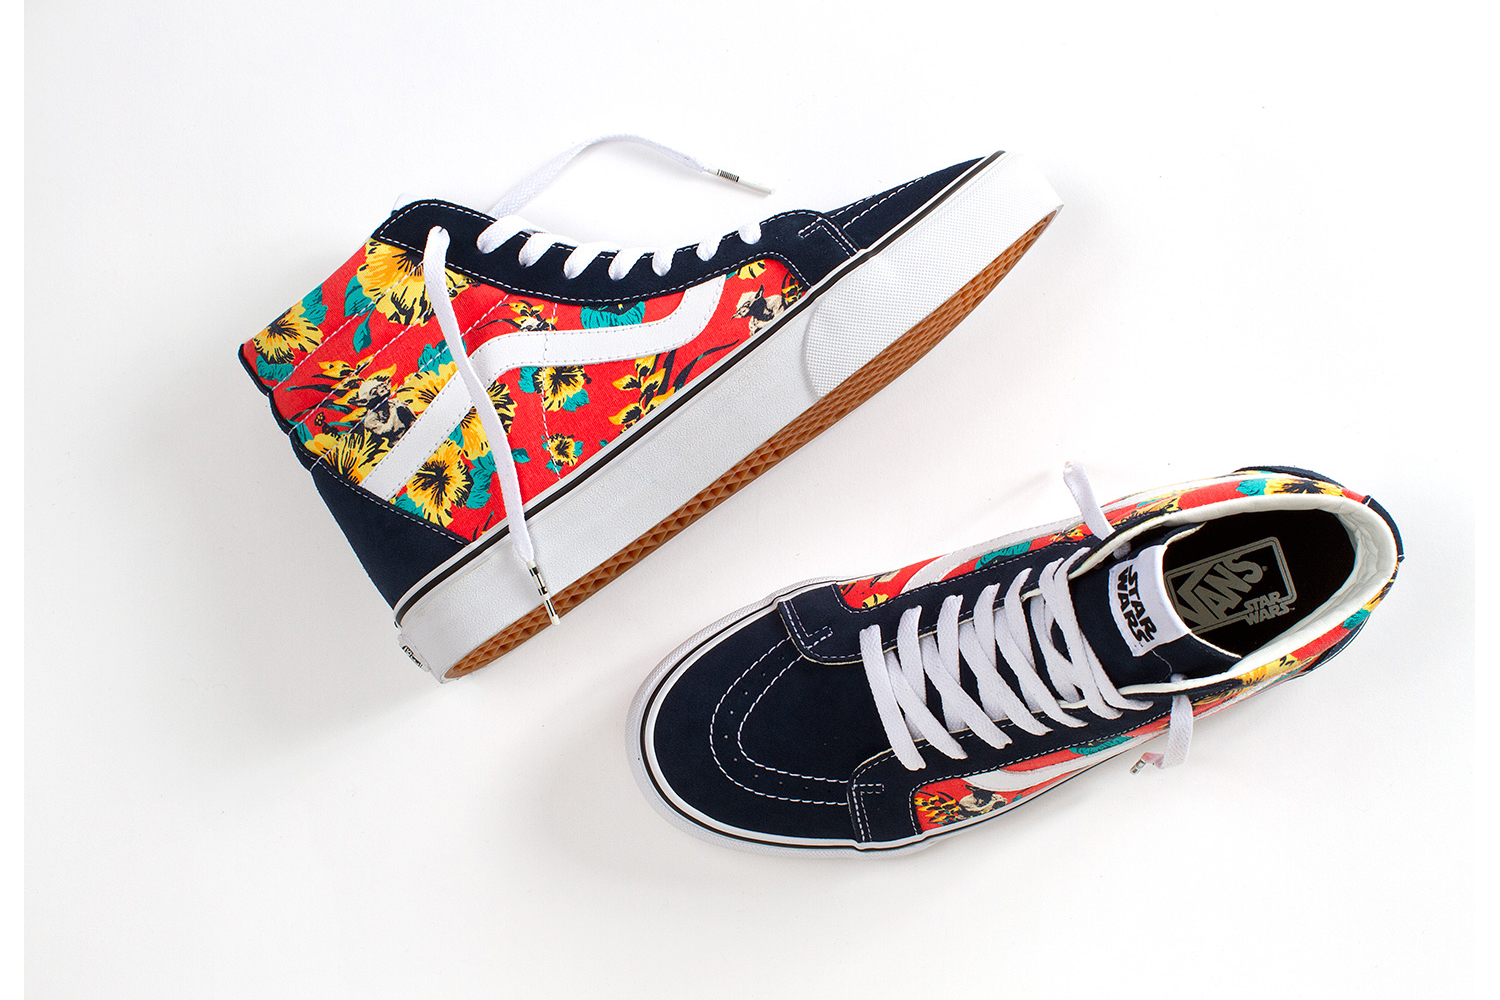 9e52f1963cebd6 Star Wars and Vans Use the Power of the Force for New Collection ...